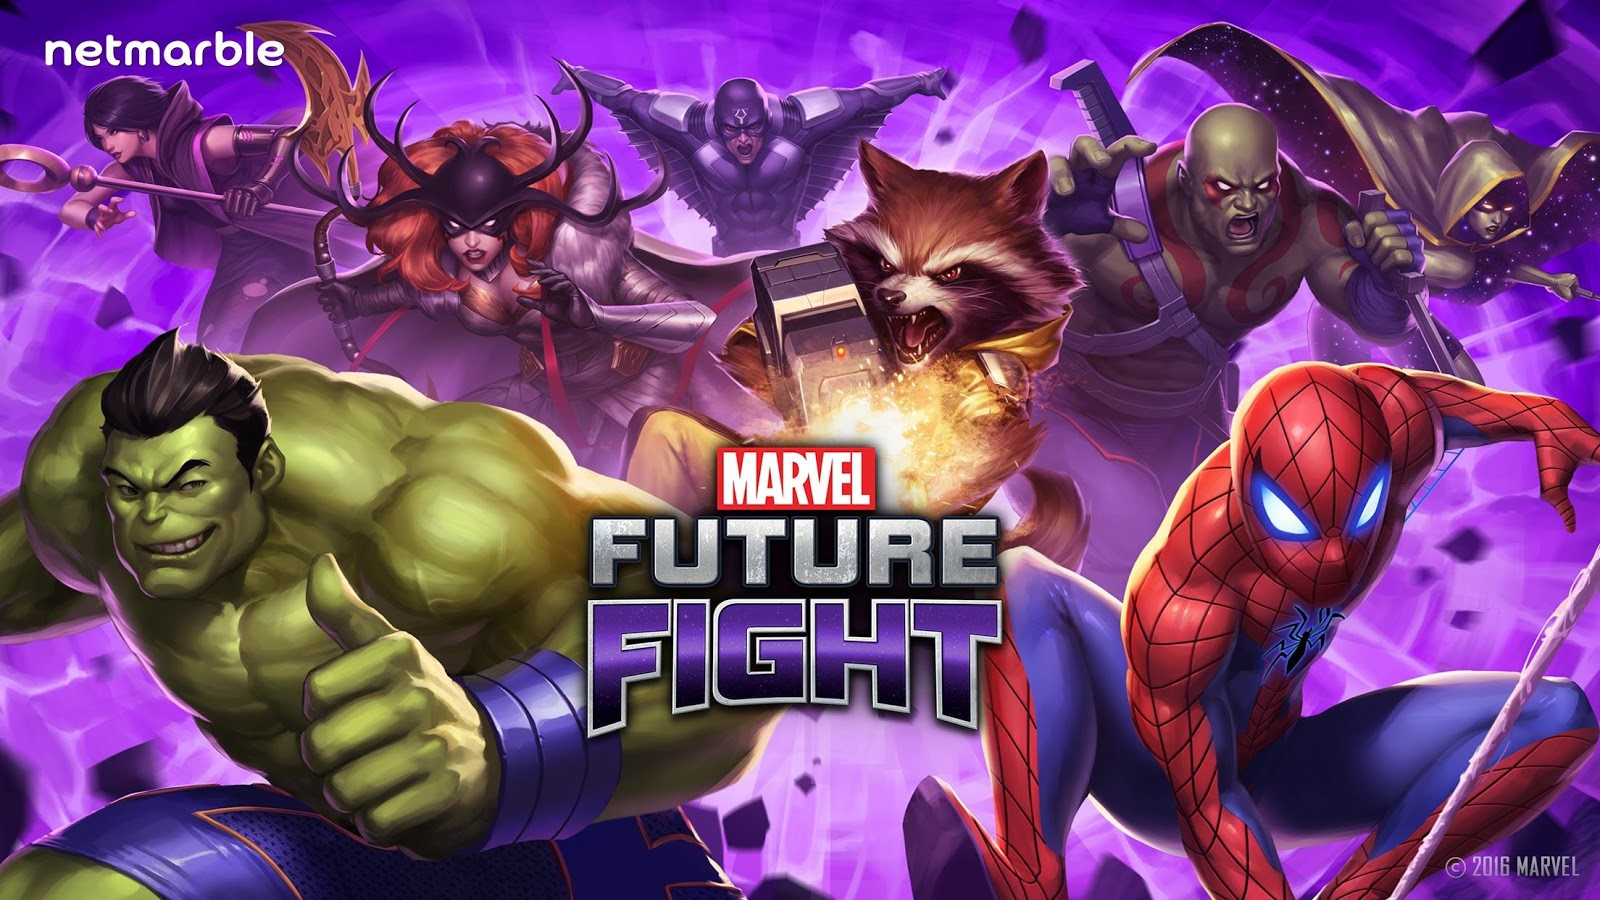 Free Download Marvel Future Fight Hd Wallpapers And Background